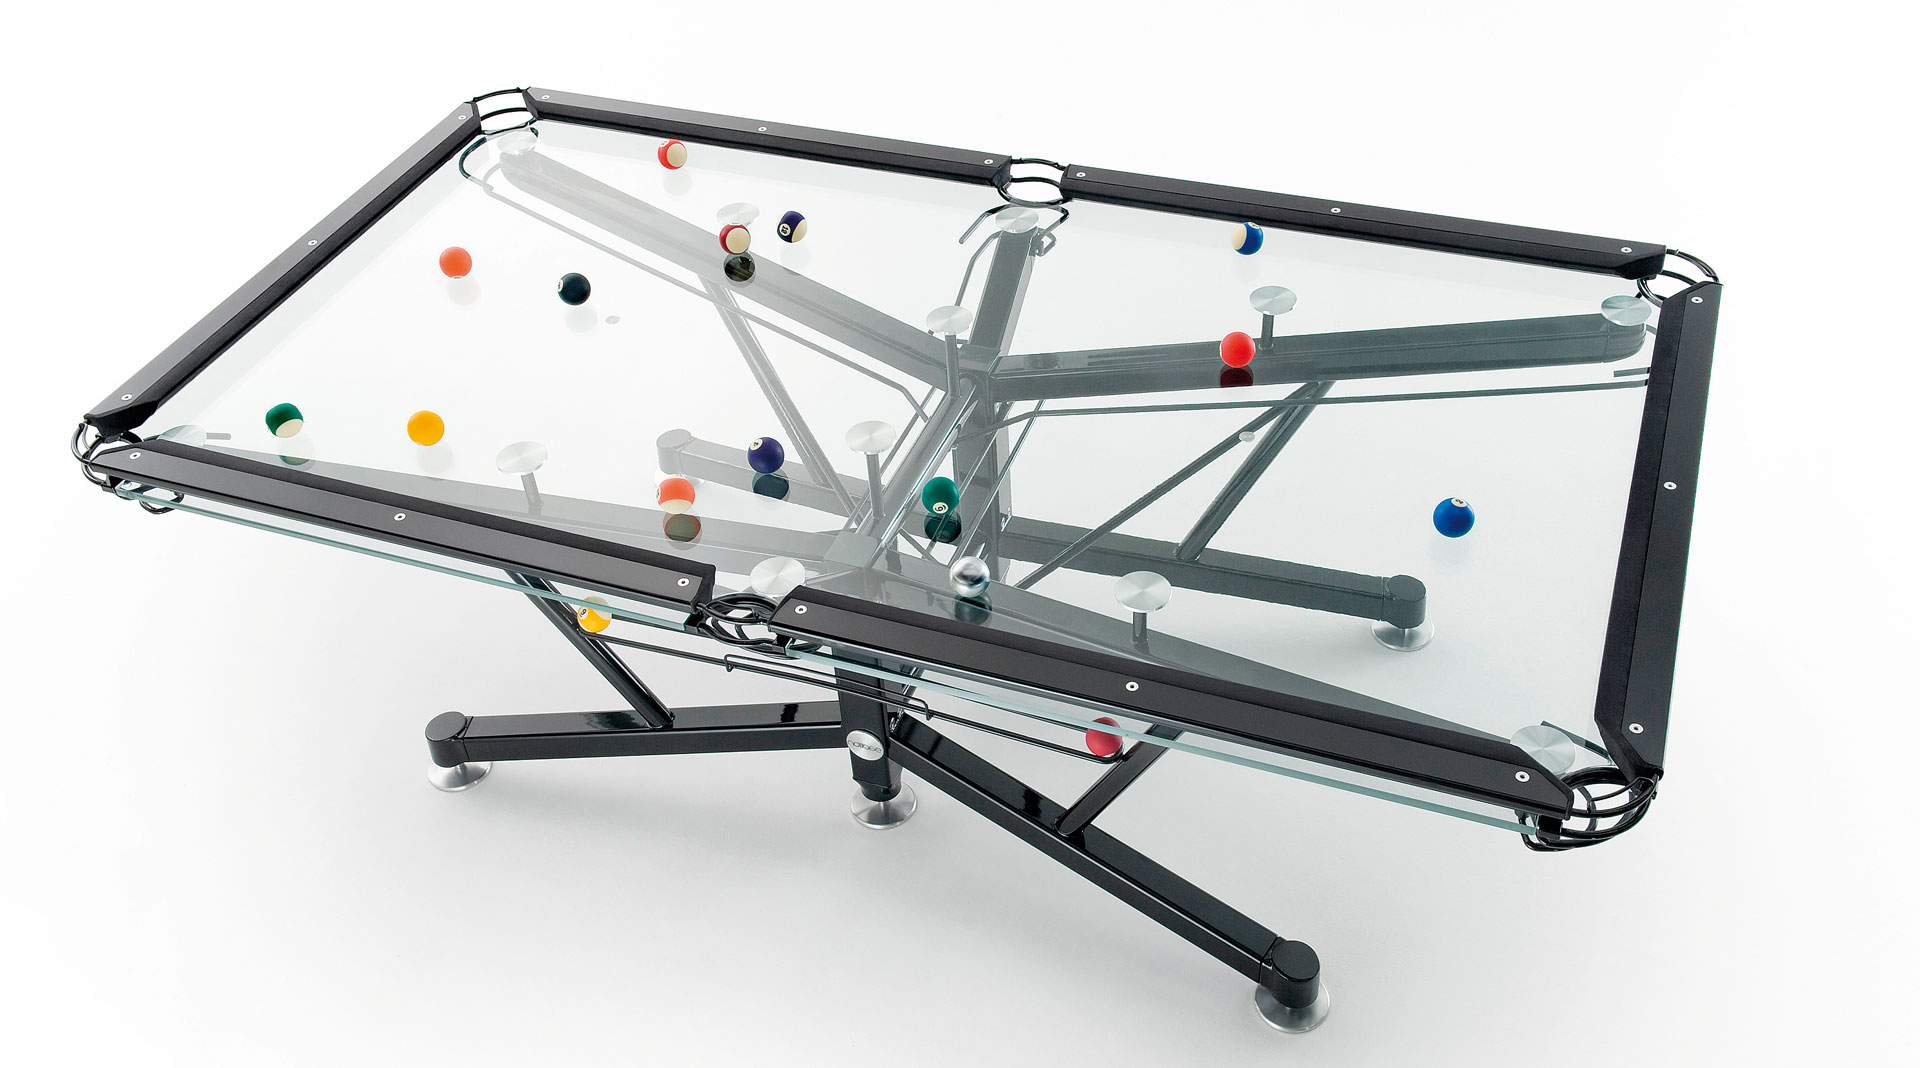 nottage design g1 glass pool table international